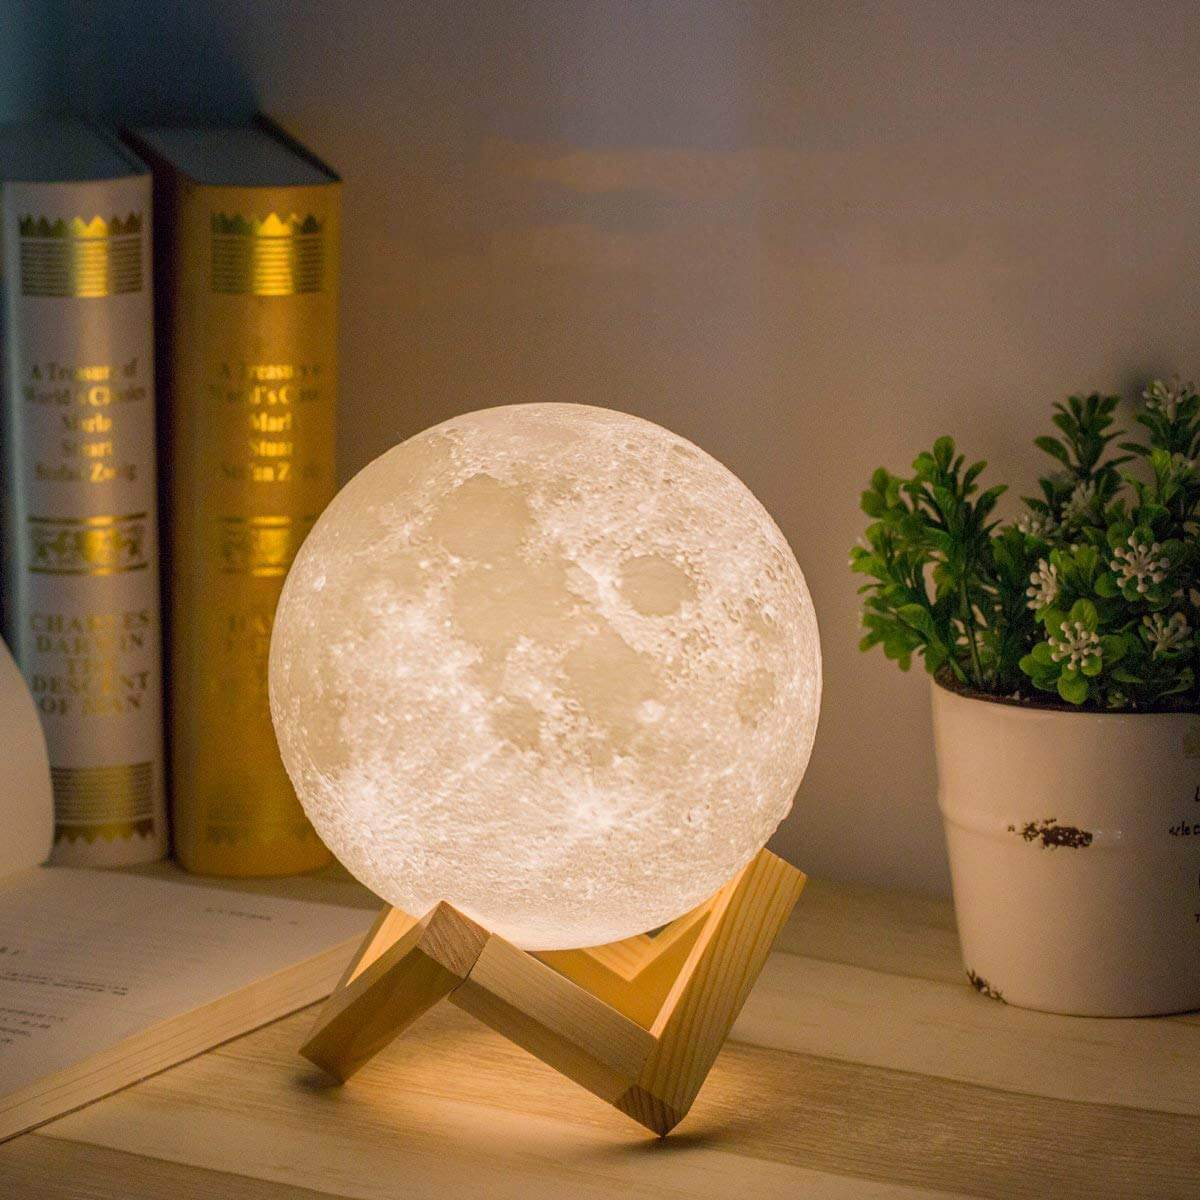 3D Moon Lamp with Simulated Lunar Surface Toy